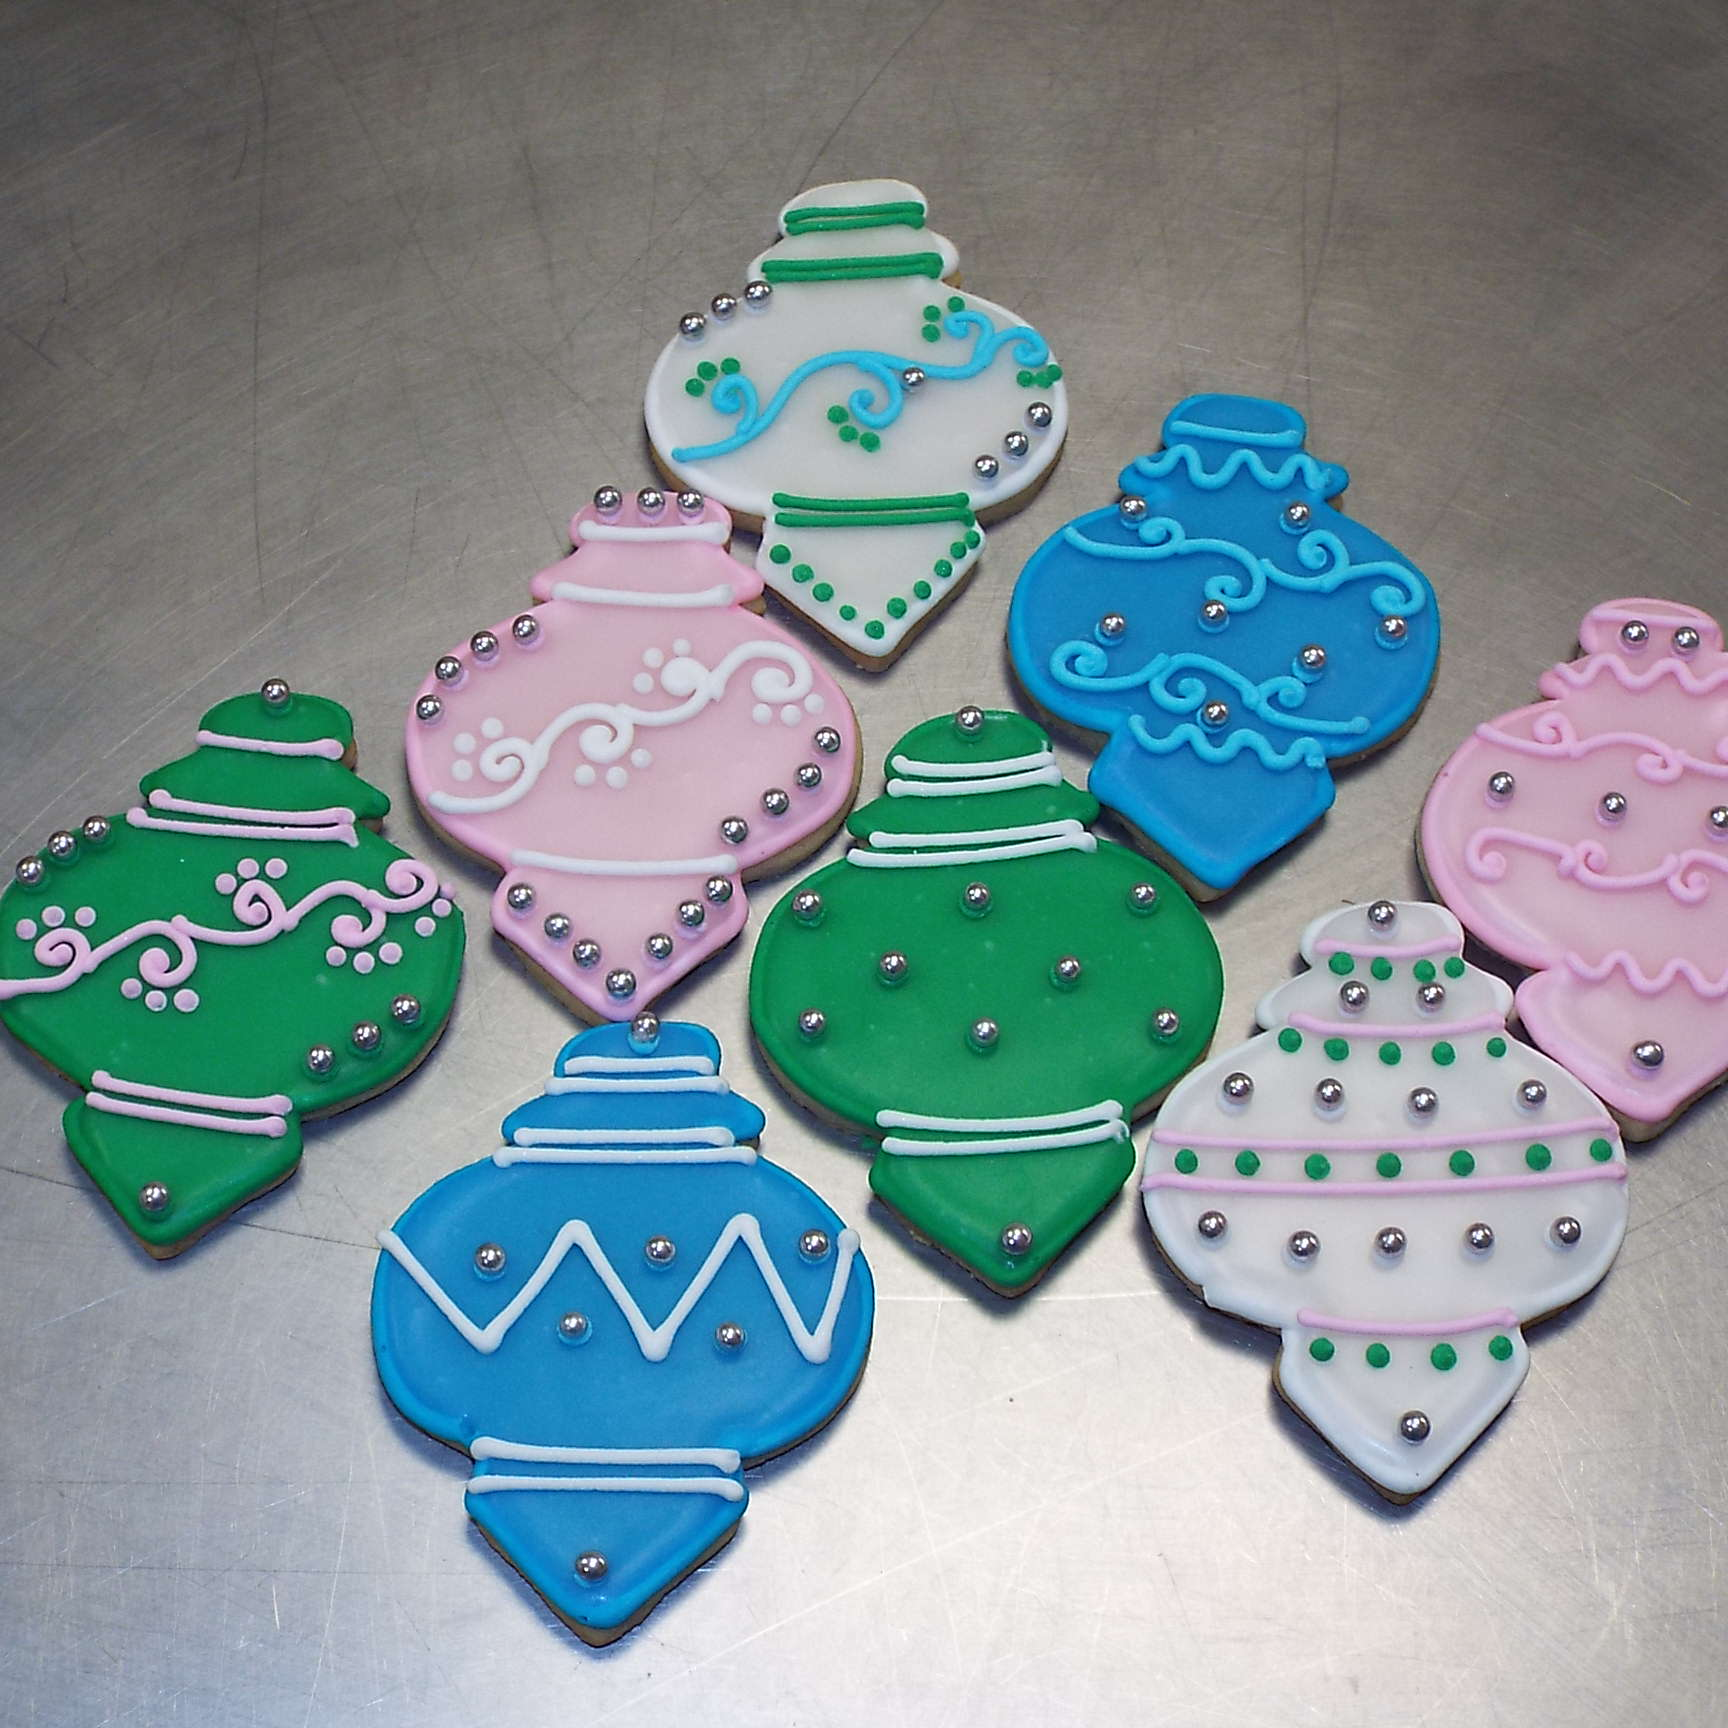 ornament cookies $3.50 each